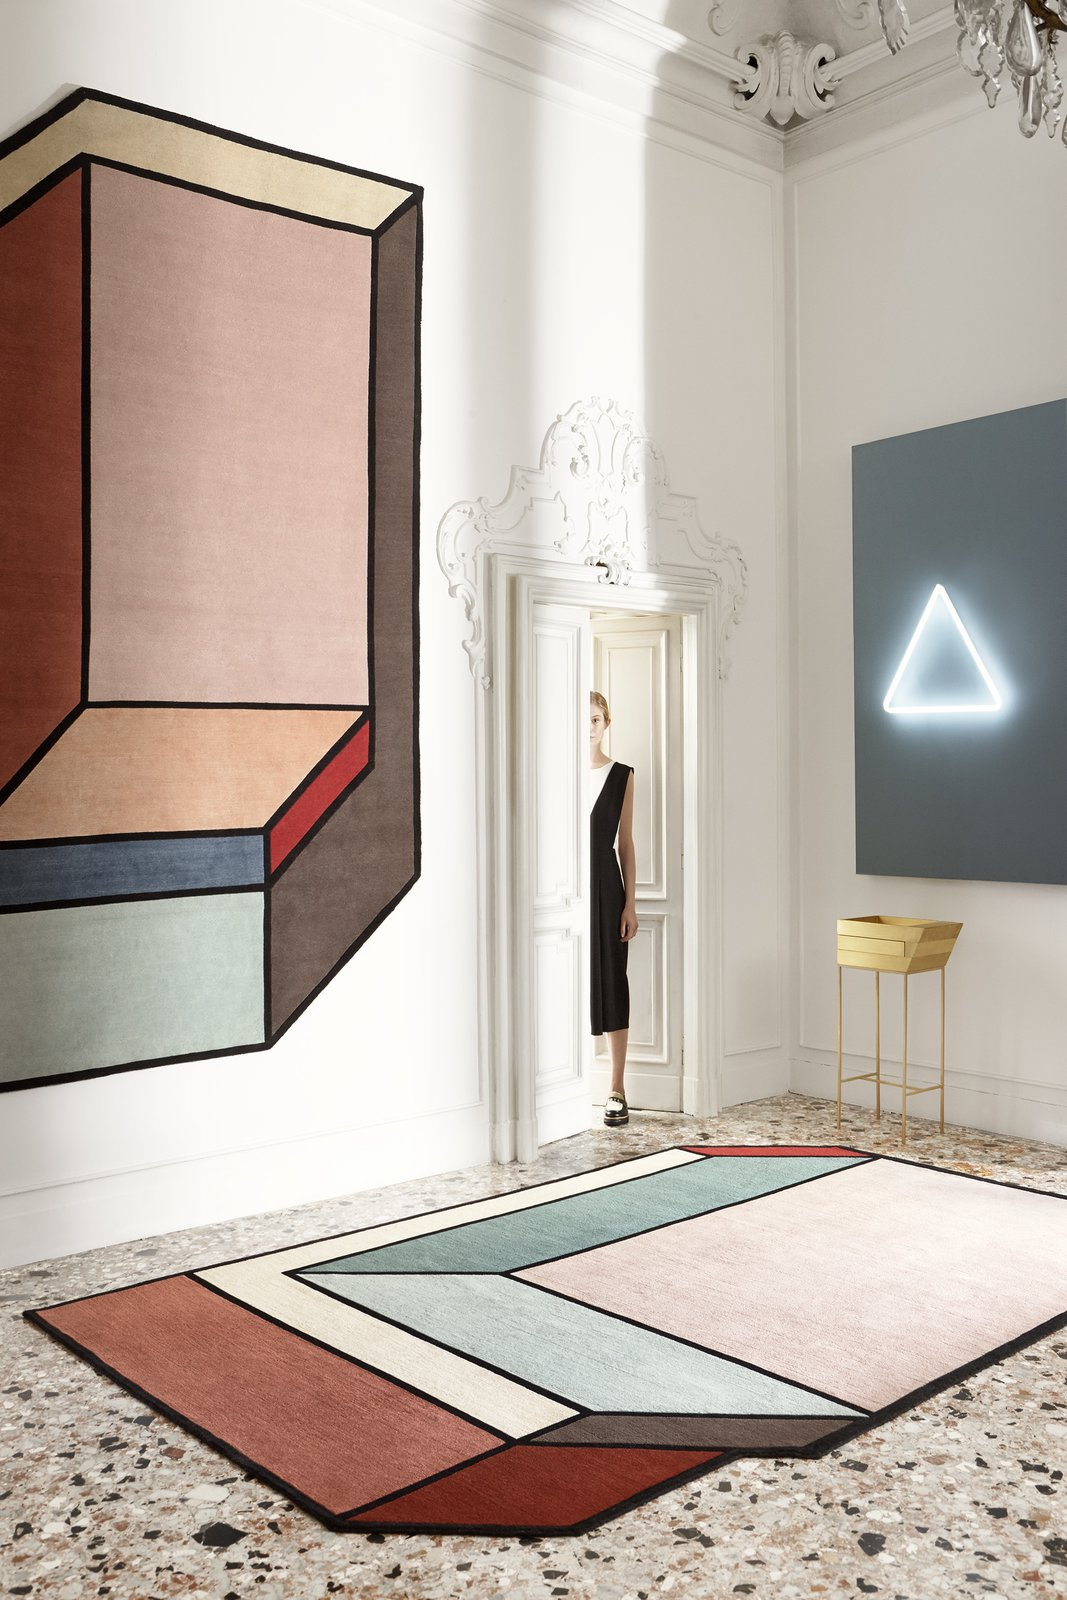 Visioni Series: Designed by Patricia Urquiola for CC Tapis  How to Frame Space With a Graphic Rug by Aileen Kwun from Rugs